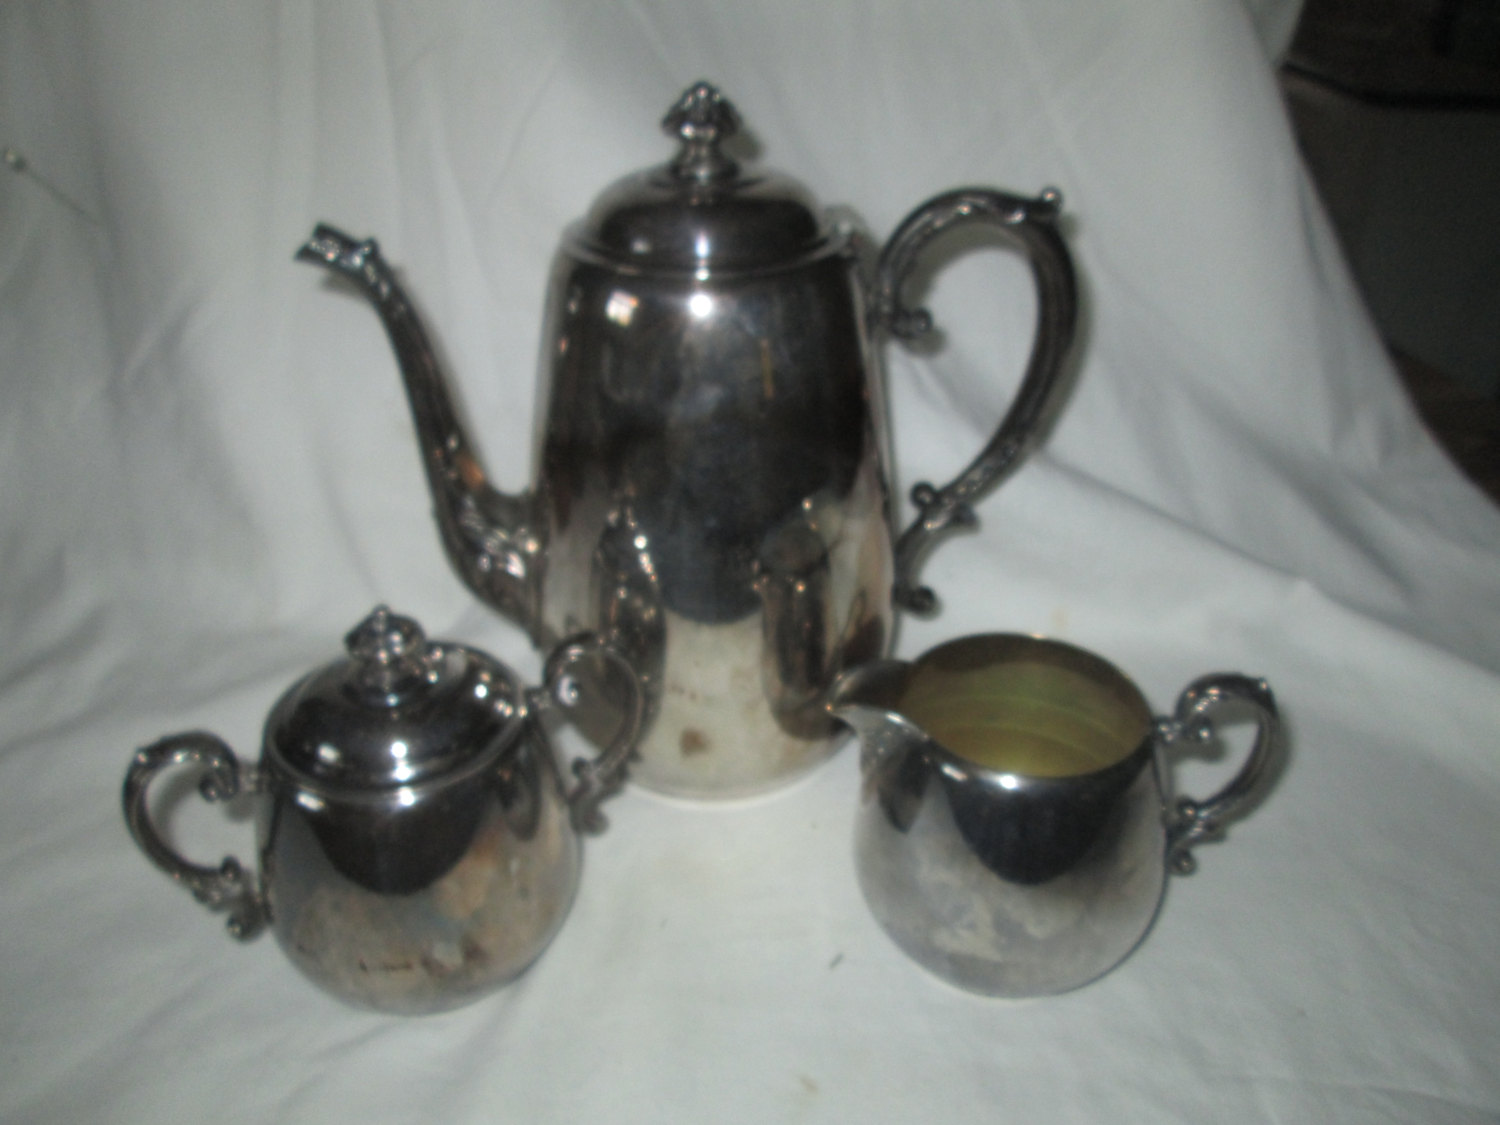 Beautiful Teapot Beautiful Ornate Teapot Tea Pot With Creamer Cream And